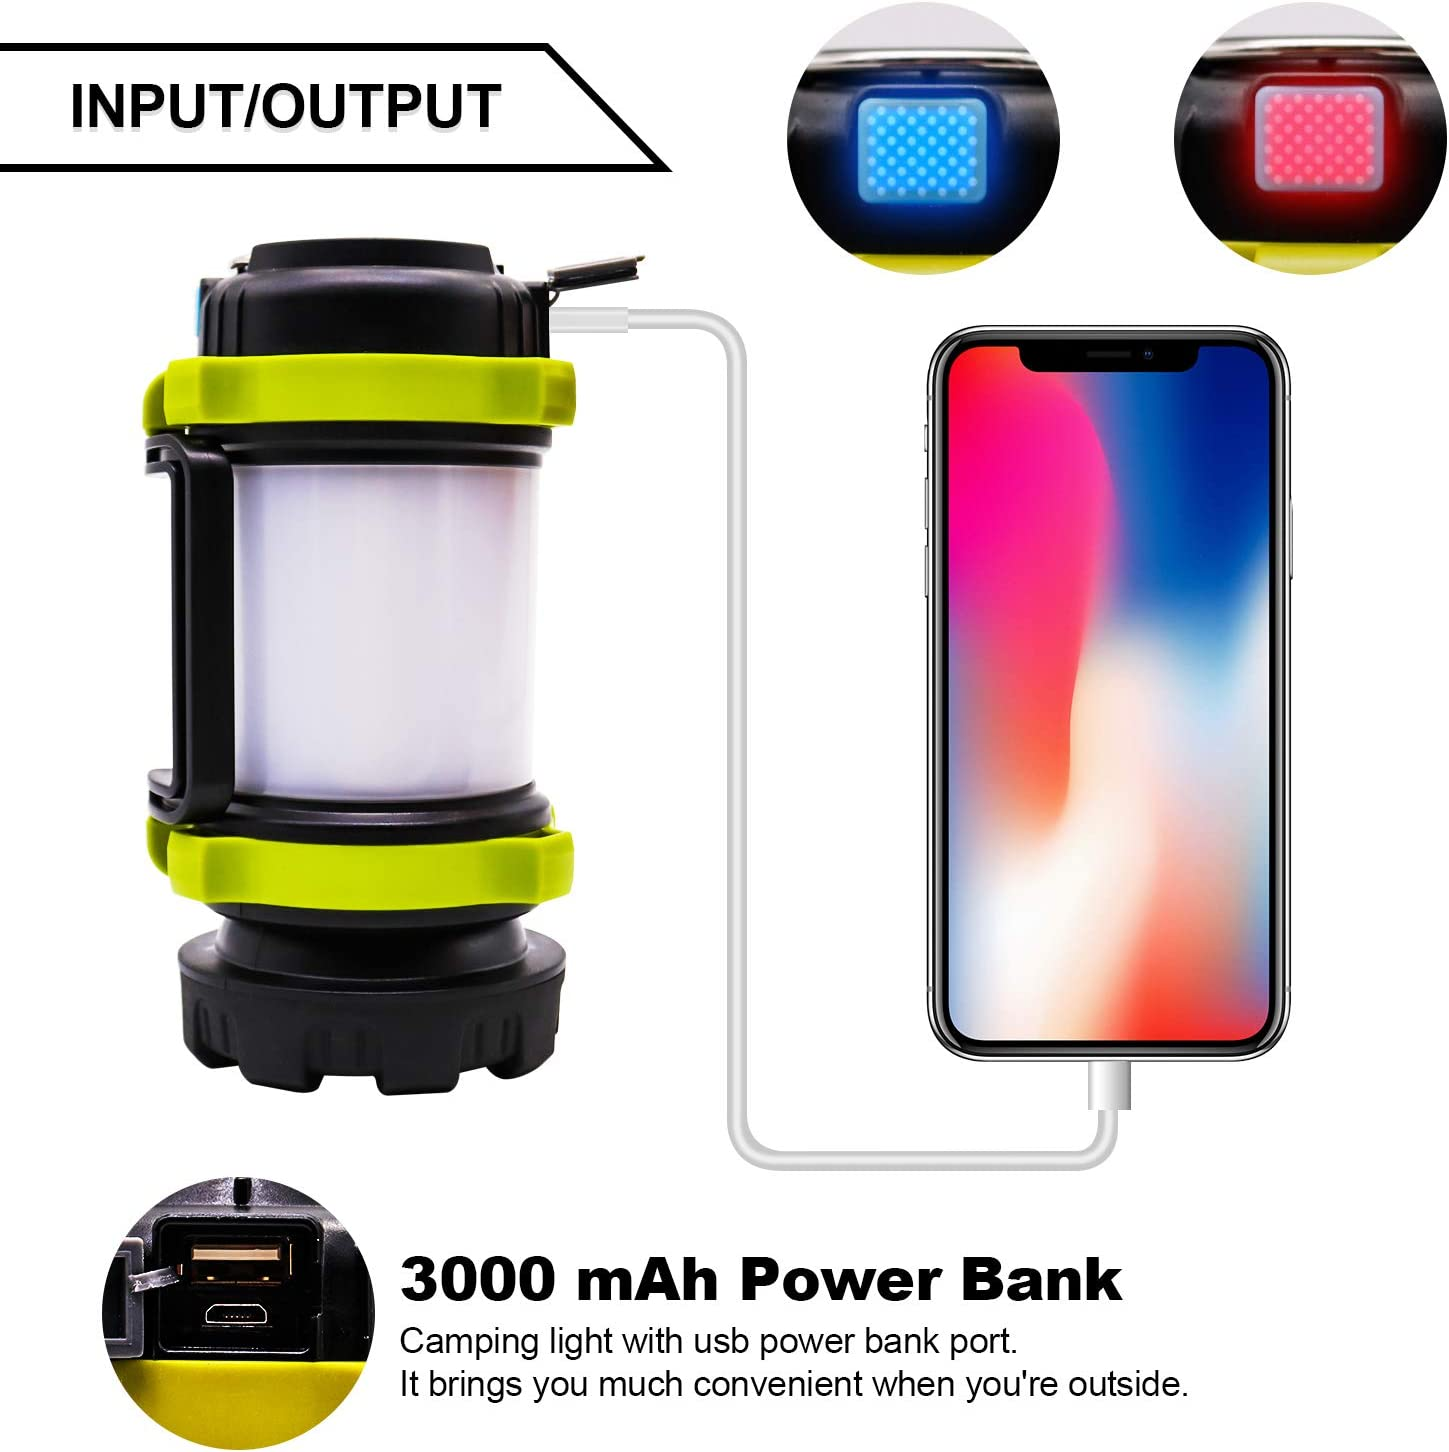 4 Light Modes 3000mAh Power Bank Camping Perfect Camping Lantern for Hiking IPX4 Waterproof 600 Lumens Ultra Bright COVMAX LED Rechargeable Camping Lantern